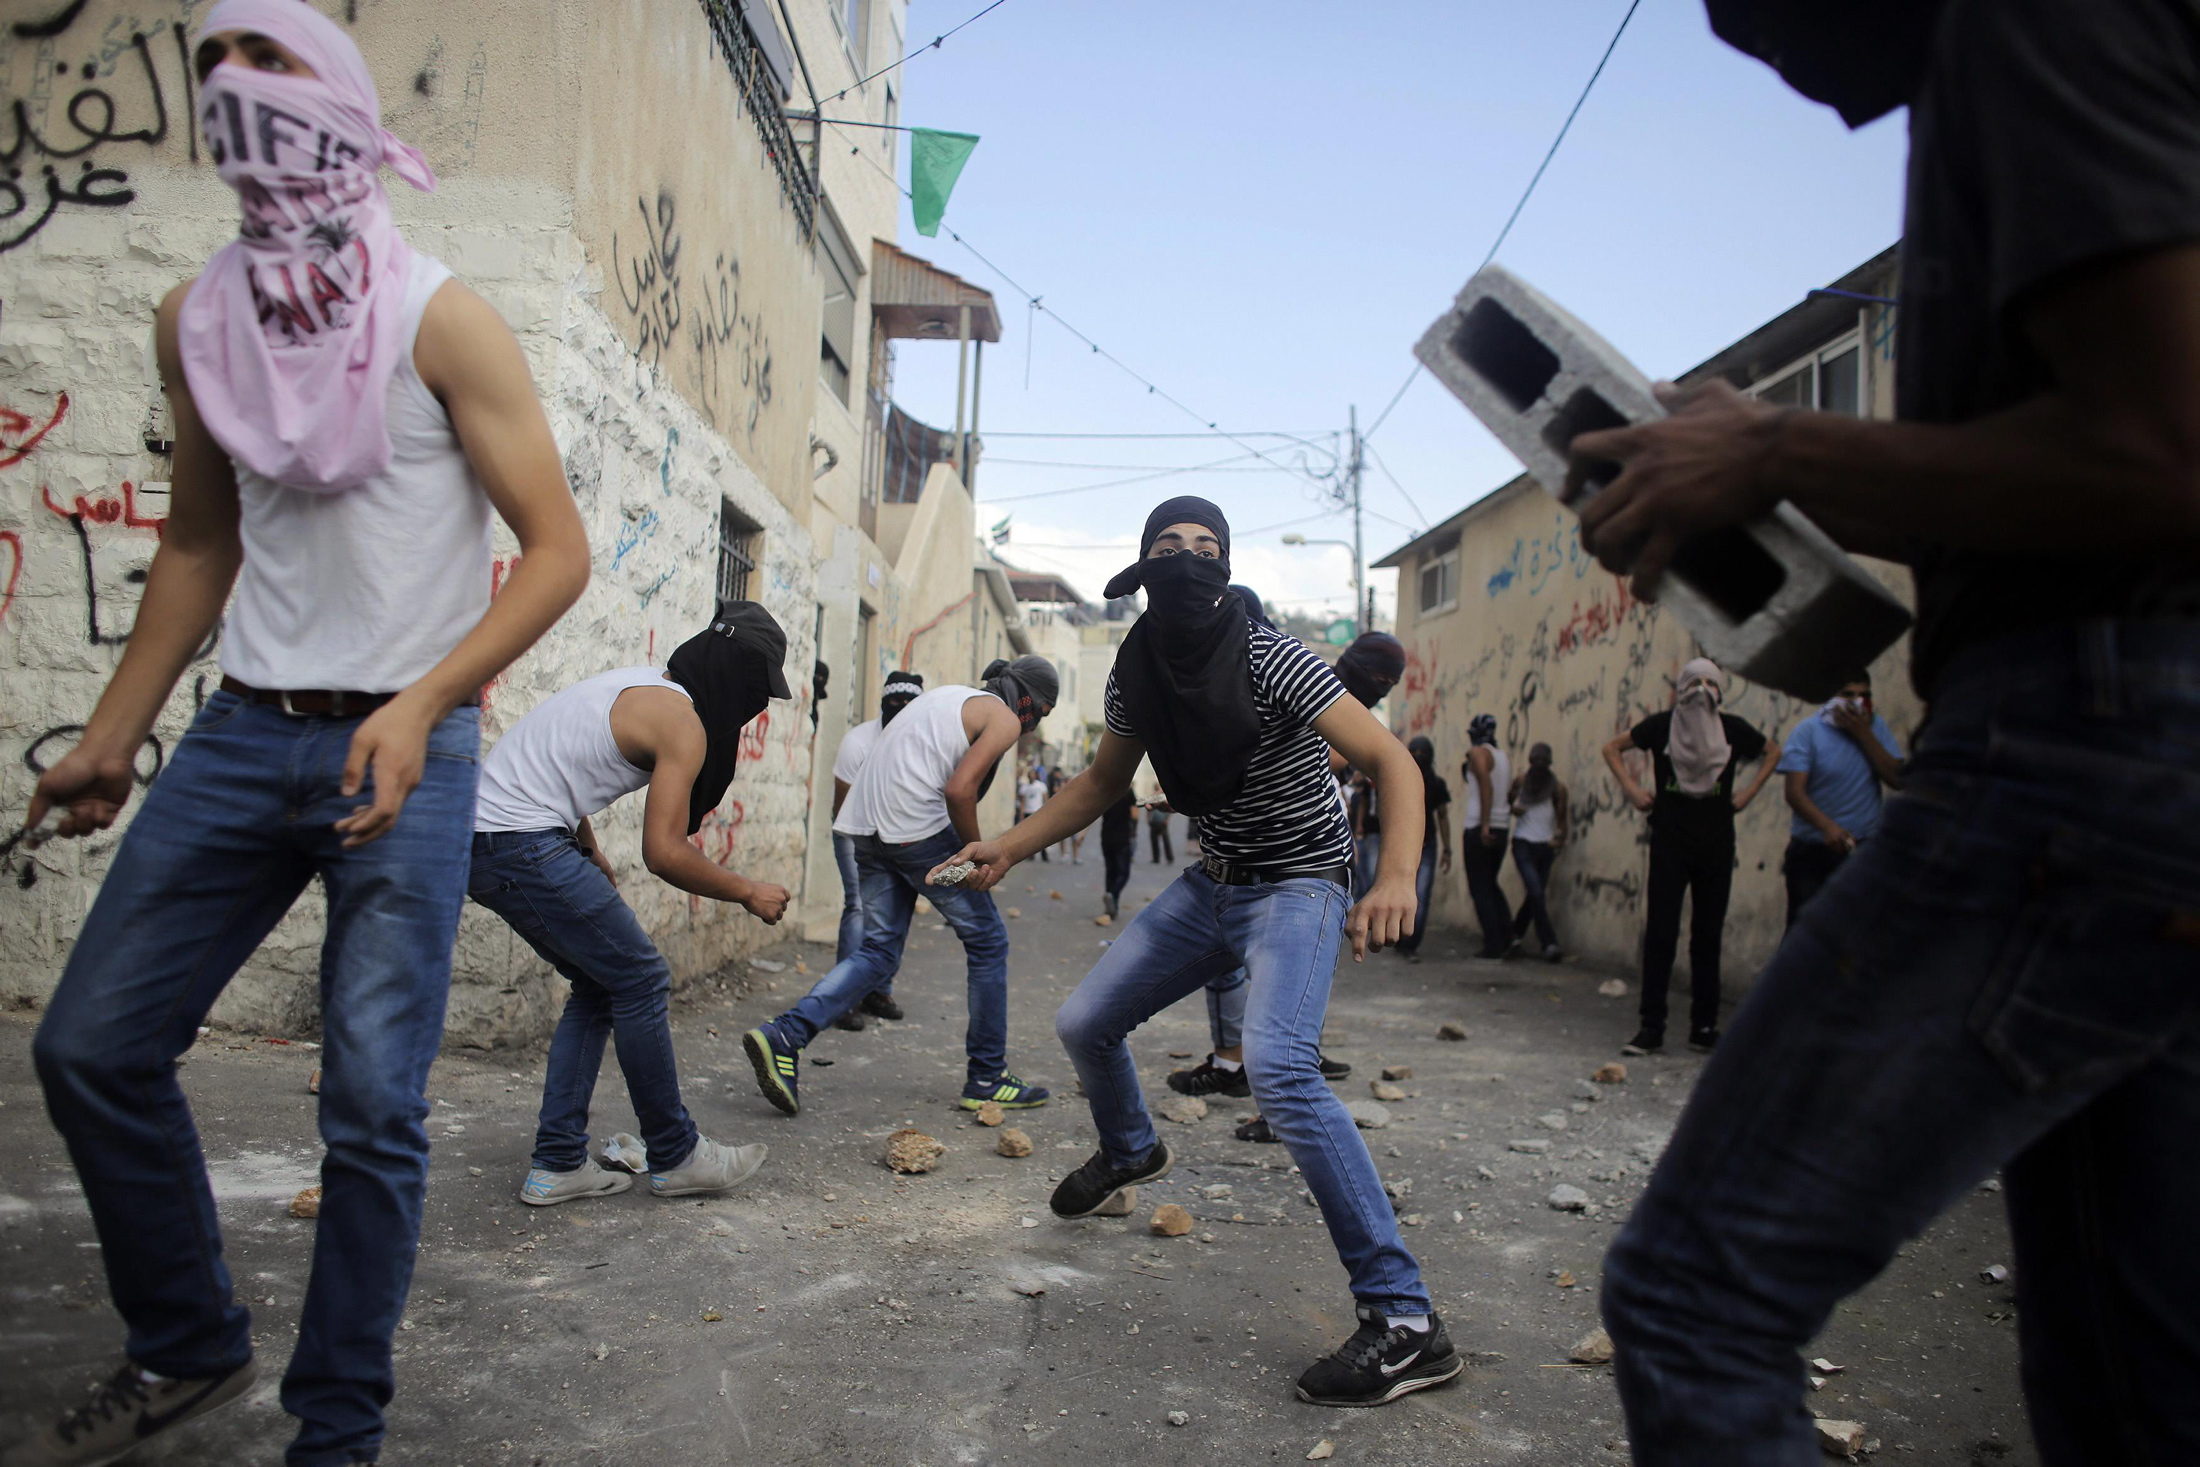 Palestinians hurl stones during clashes with Israeli police in the East Jerusalem neighbourhood of Wadi Joz